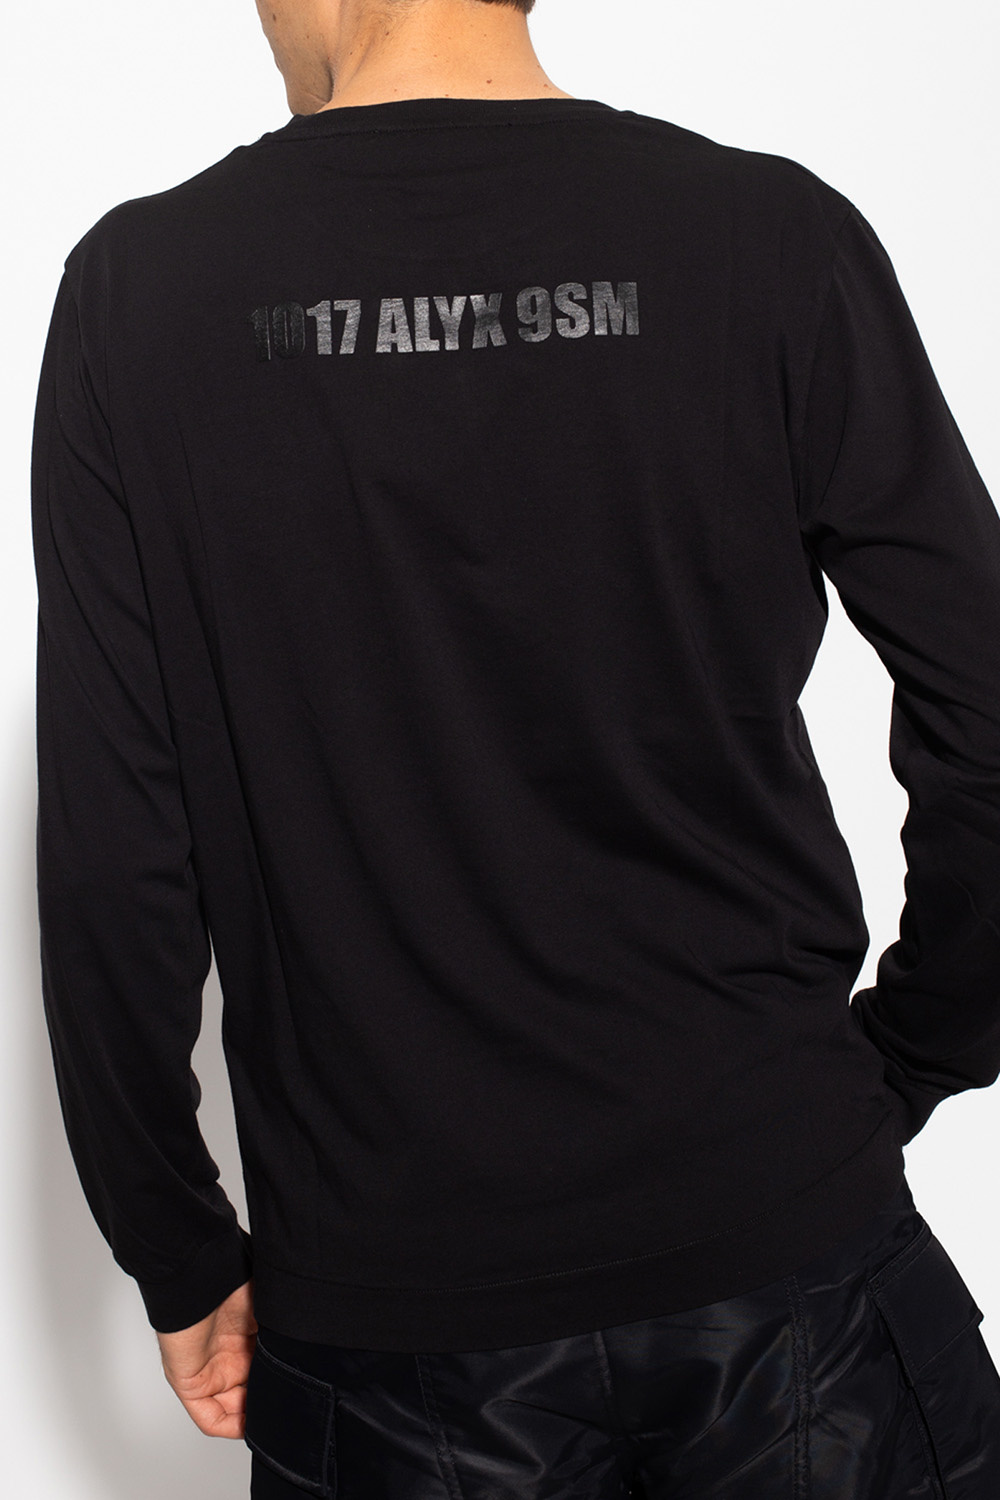 1017 ALYX 9SM T-shirt with long sleeves